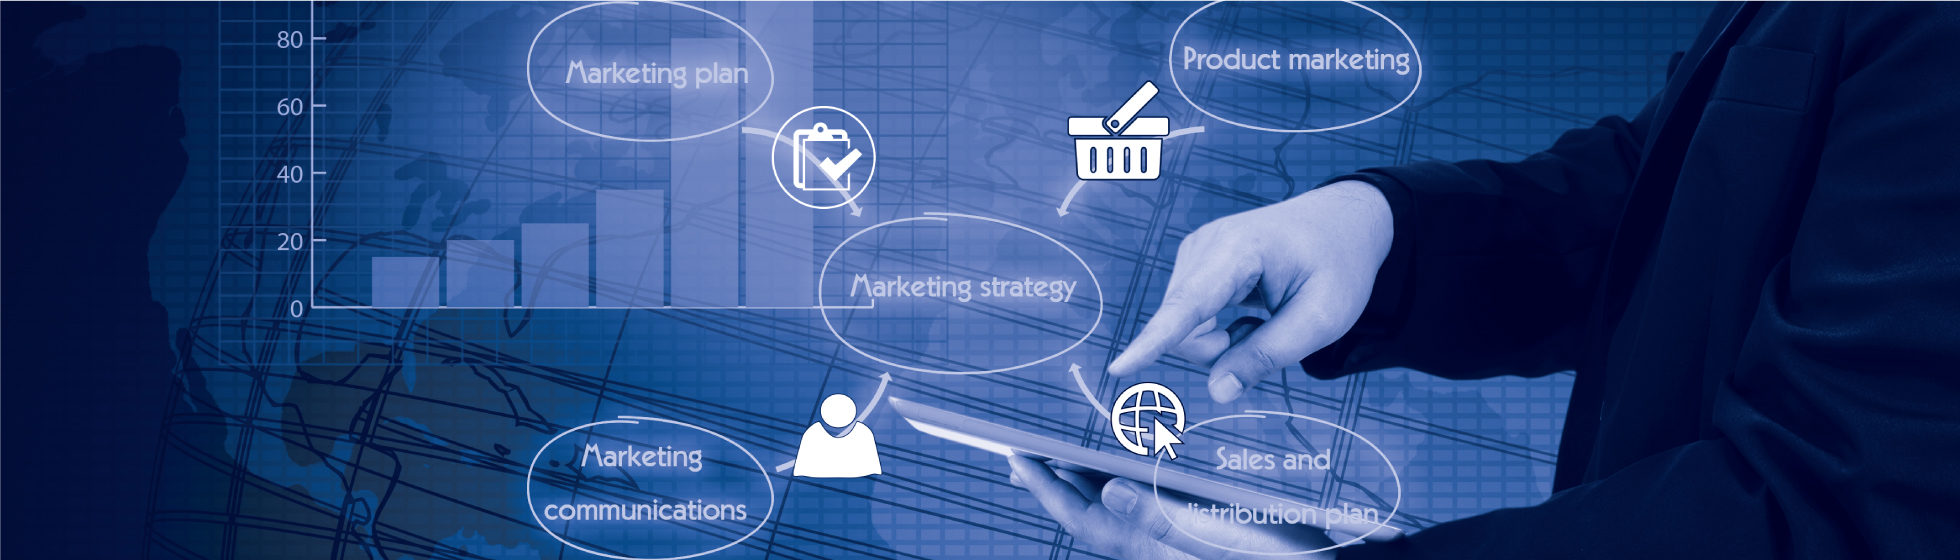 International marketing: strategy, marketing plan and global marketing